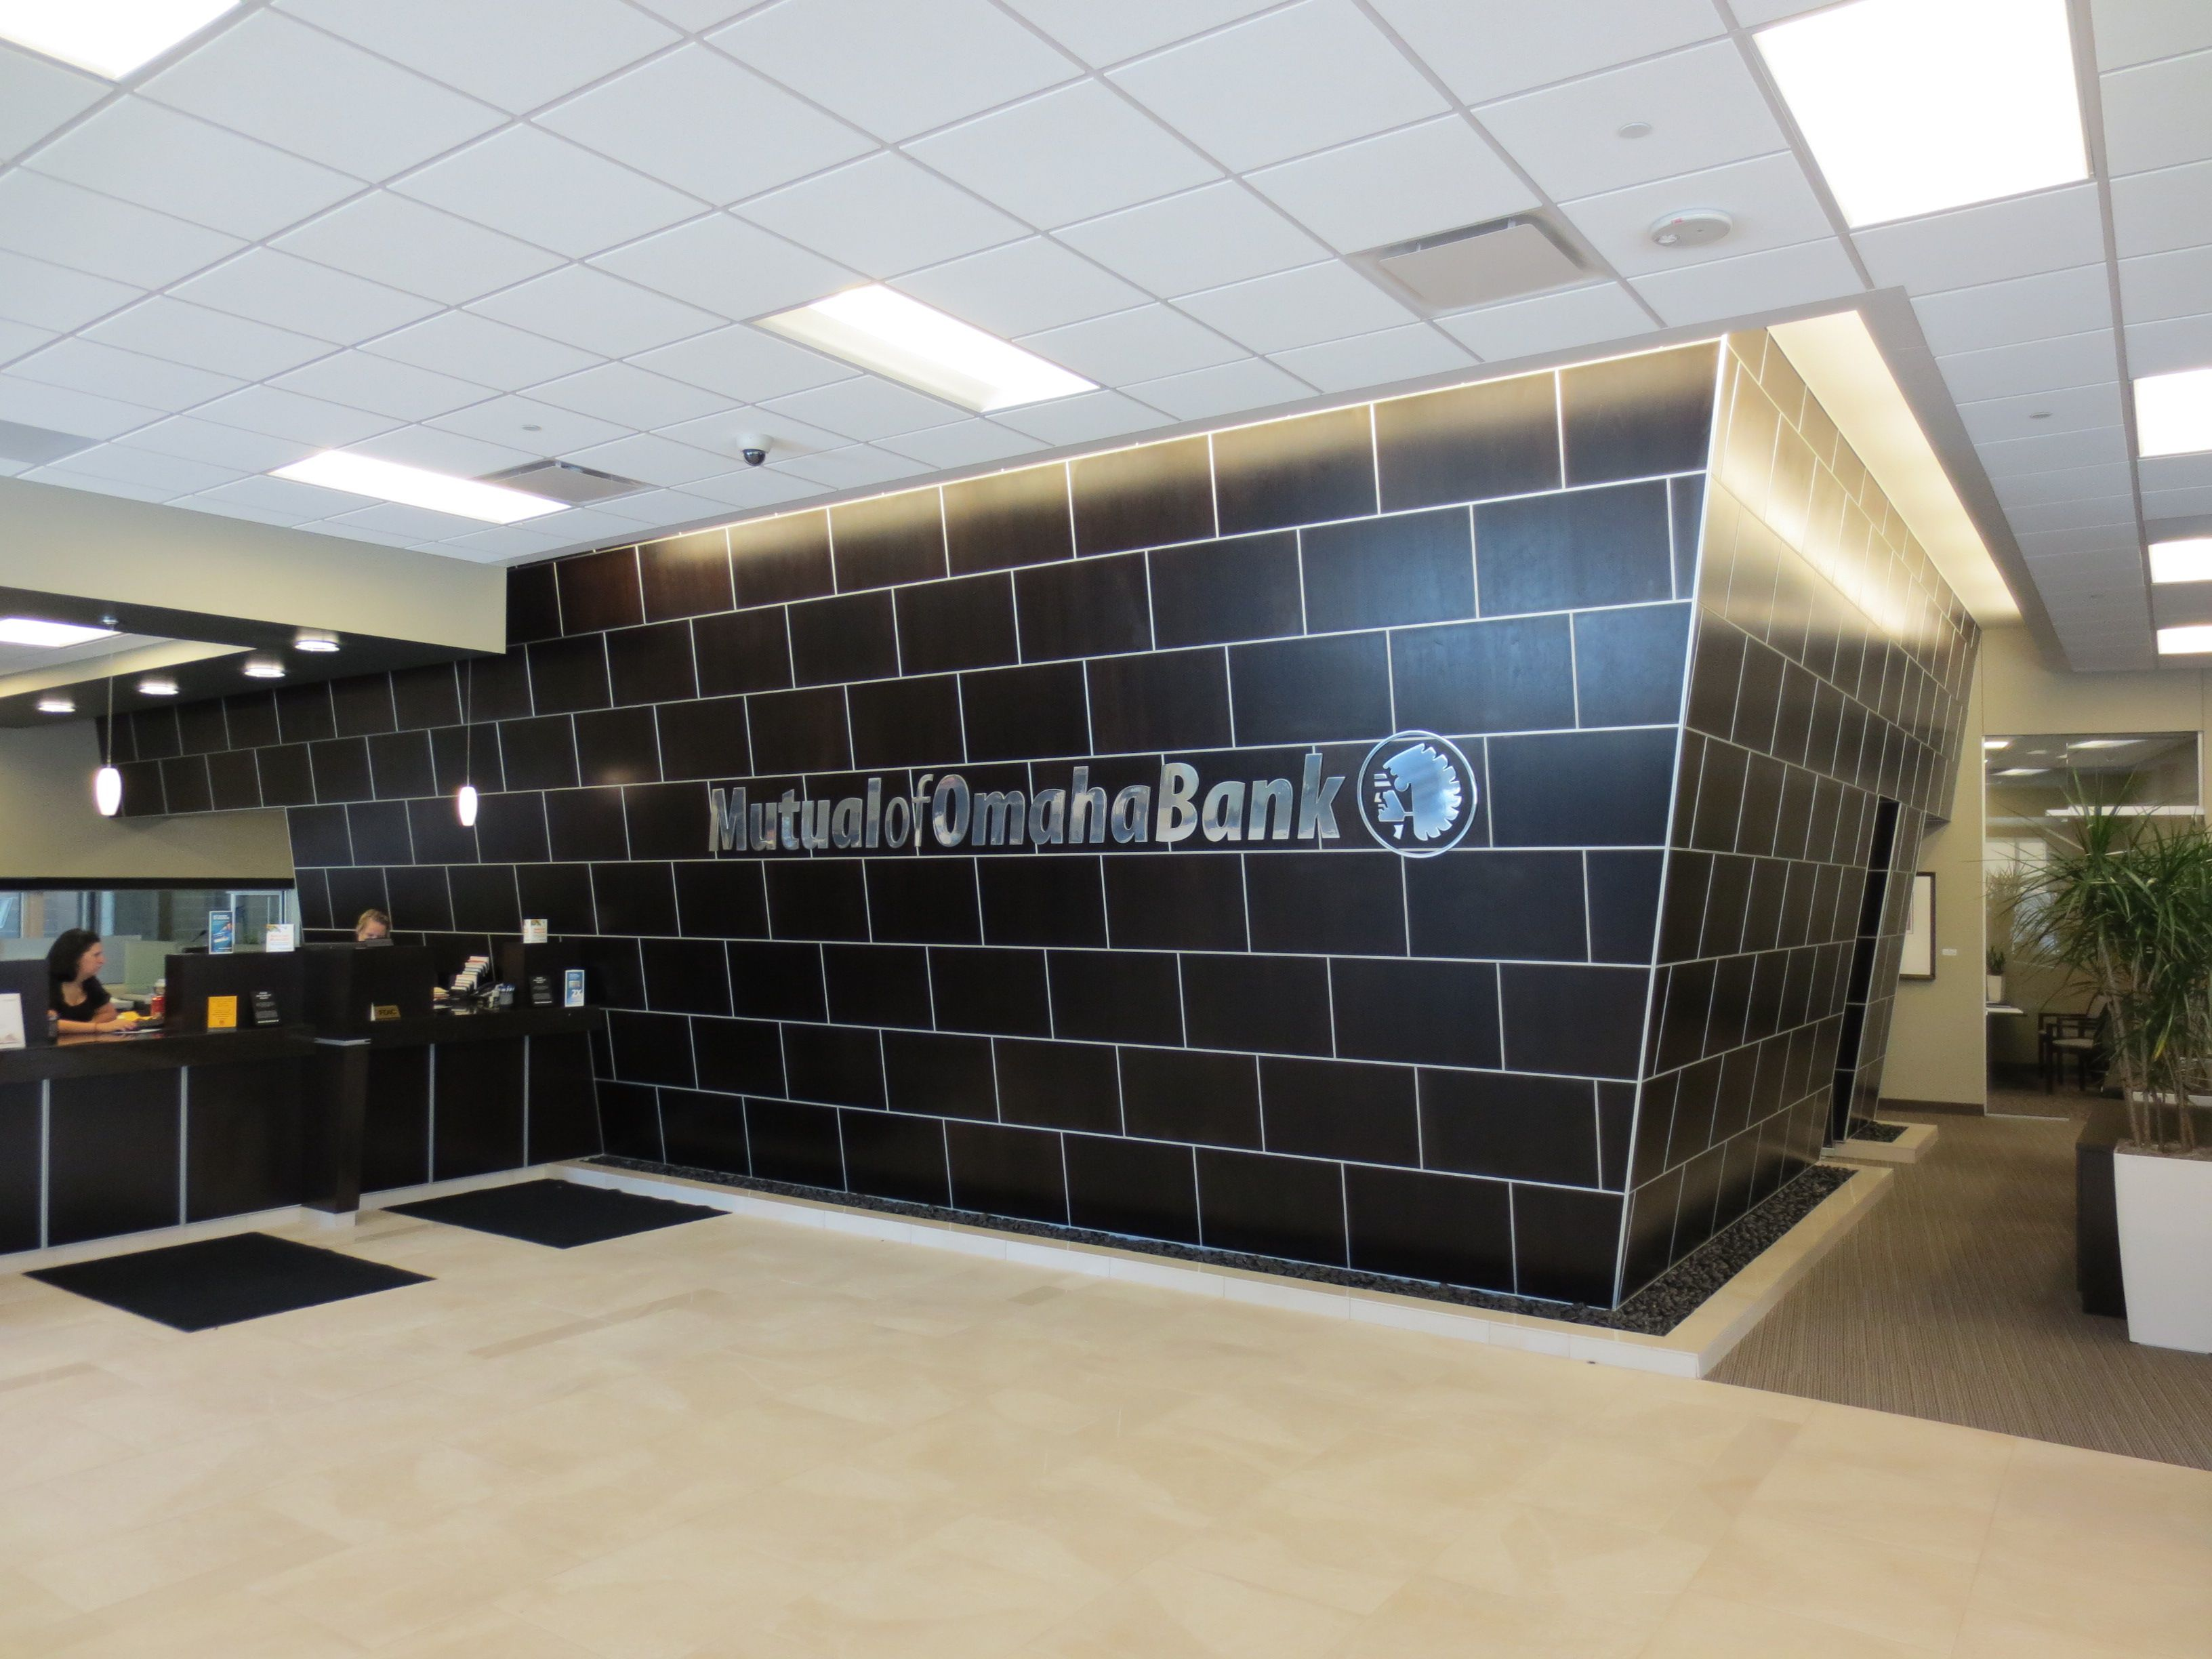 Stunning Design for Mutual of Omaha Bank using Marlite Surface